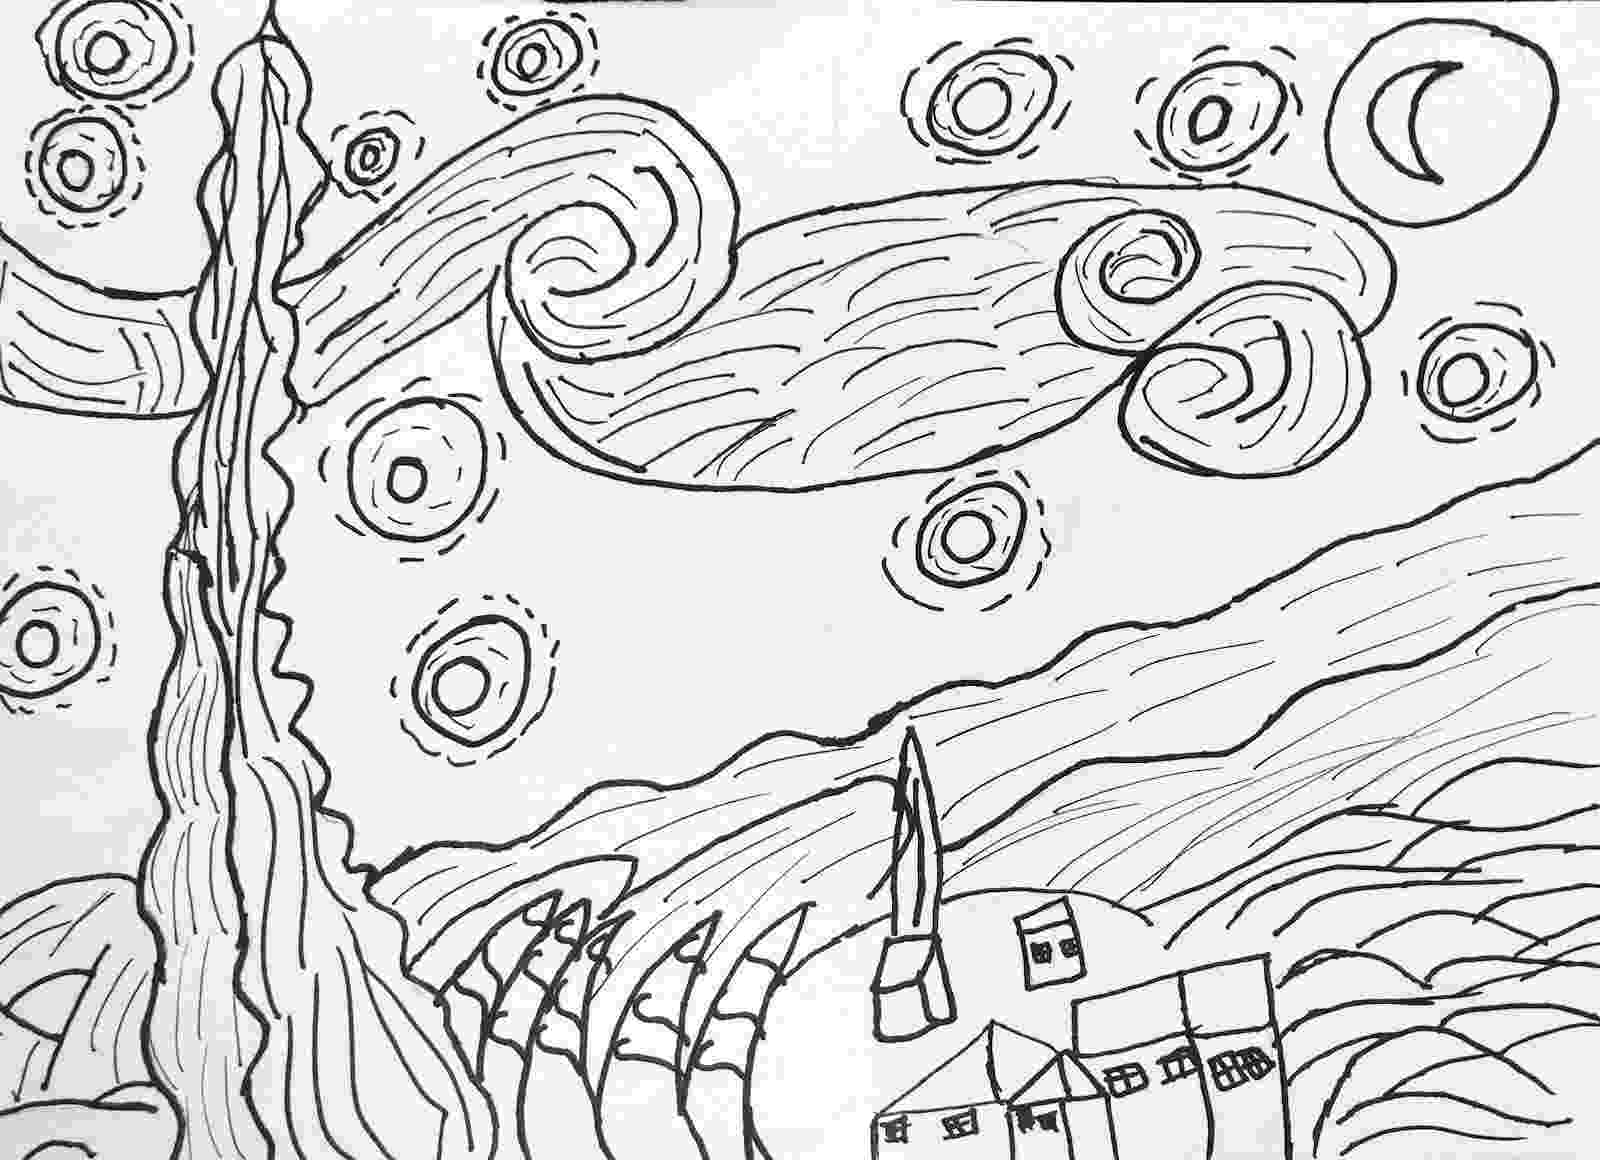 starry night coloring page starry night coloring page grown ups like to color too night coloring starry page